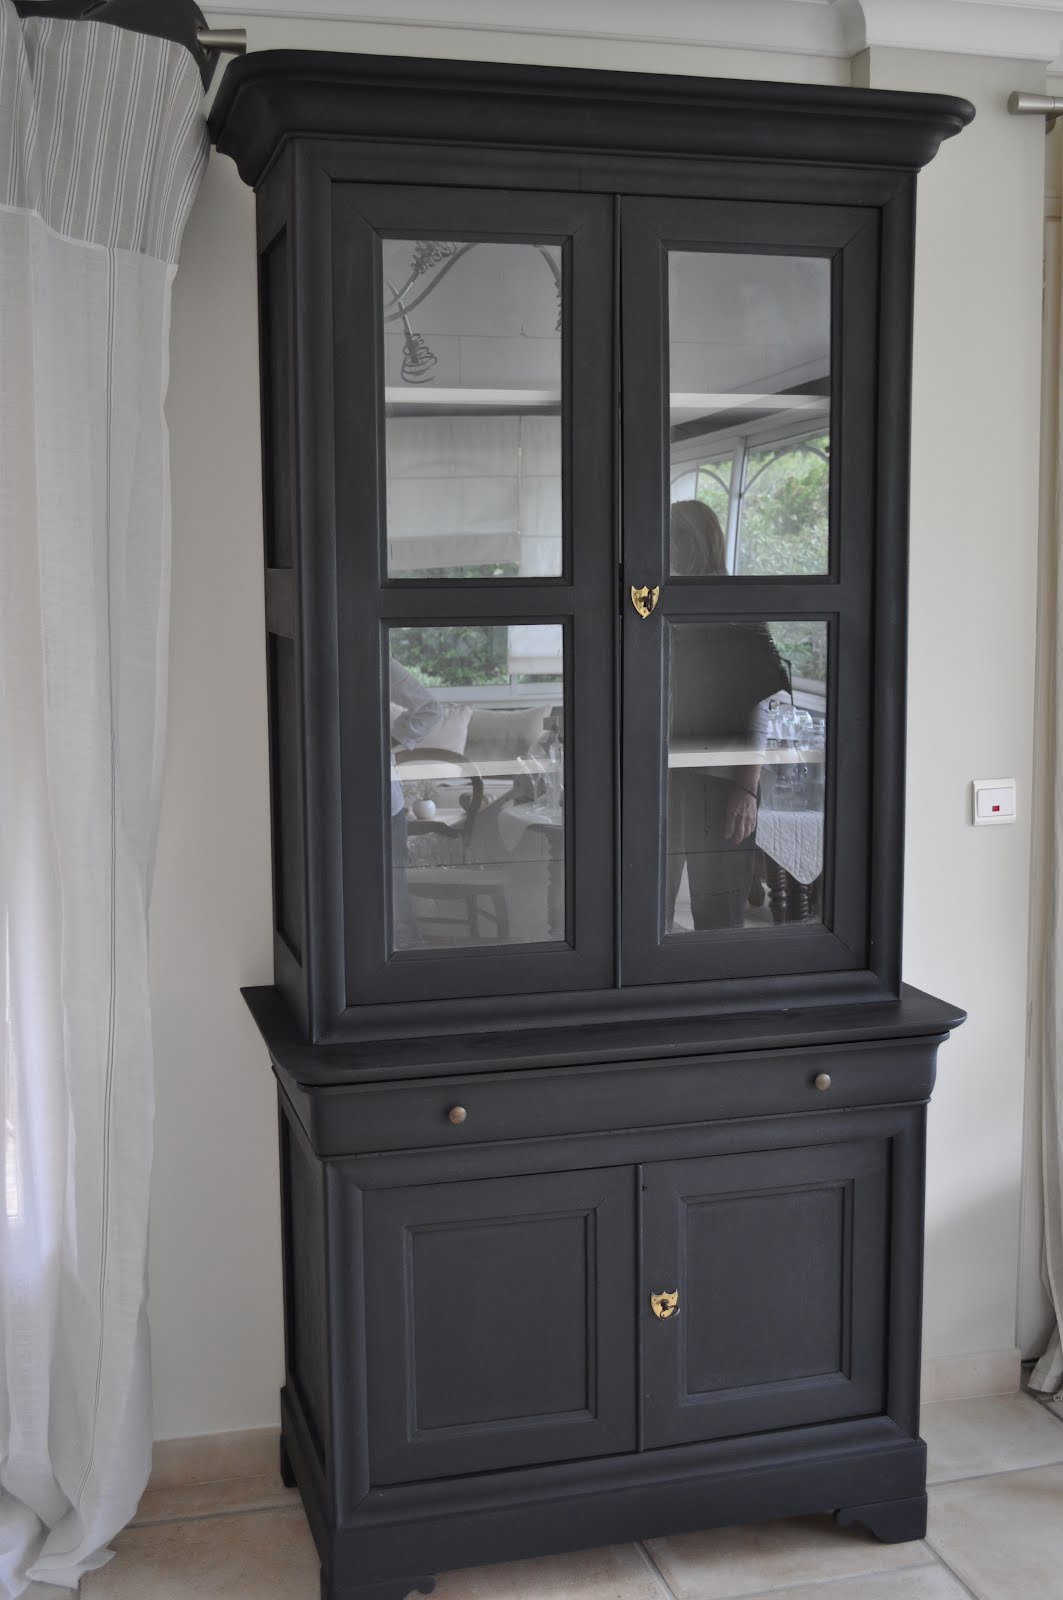 meuble ancien peint en noir top chez ebeniste meubles. Black Bedroom Furniture Sets. Home Design Ideas